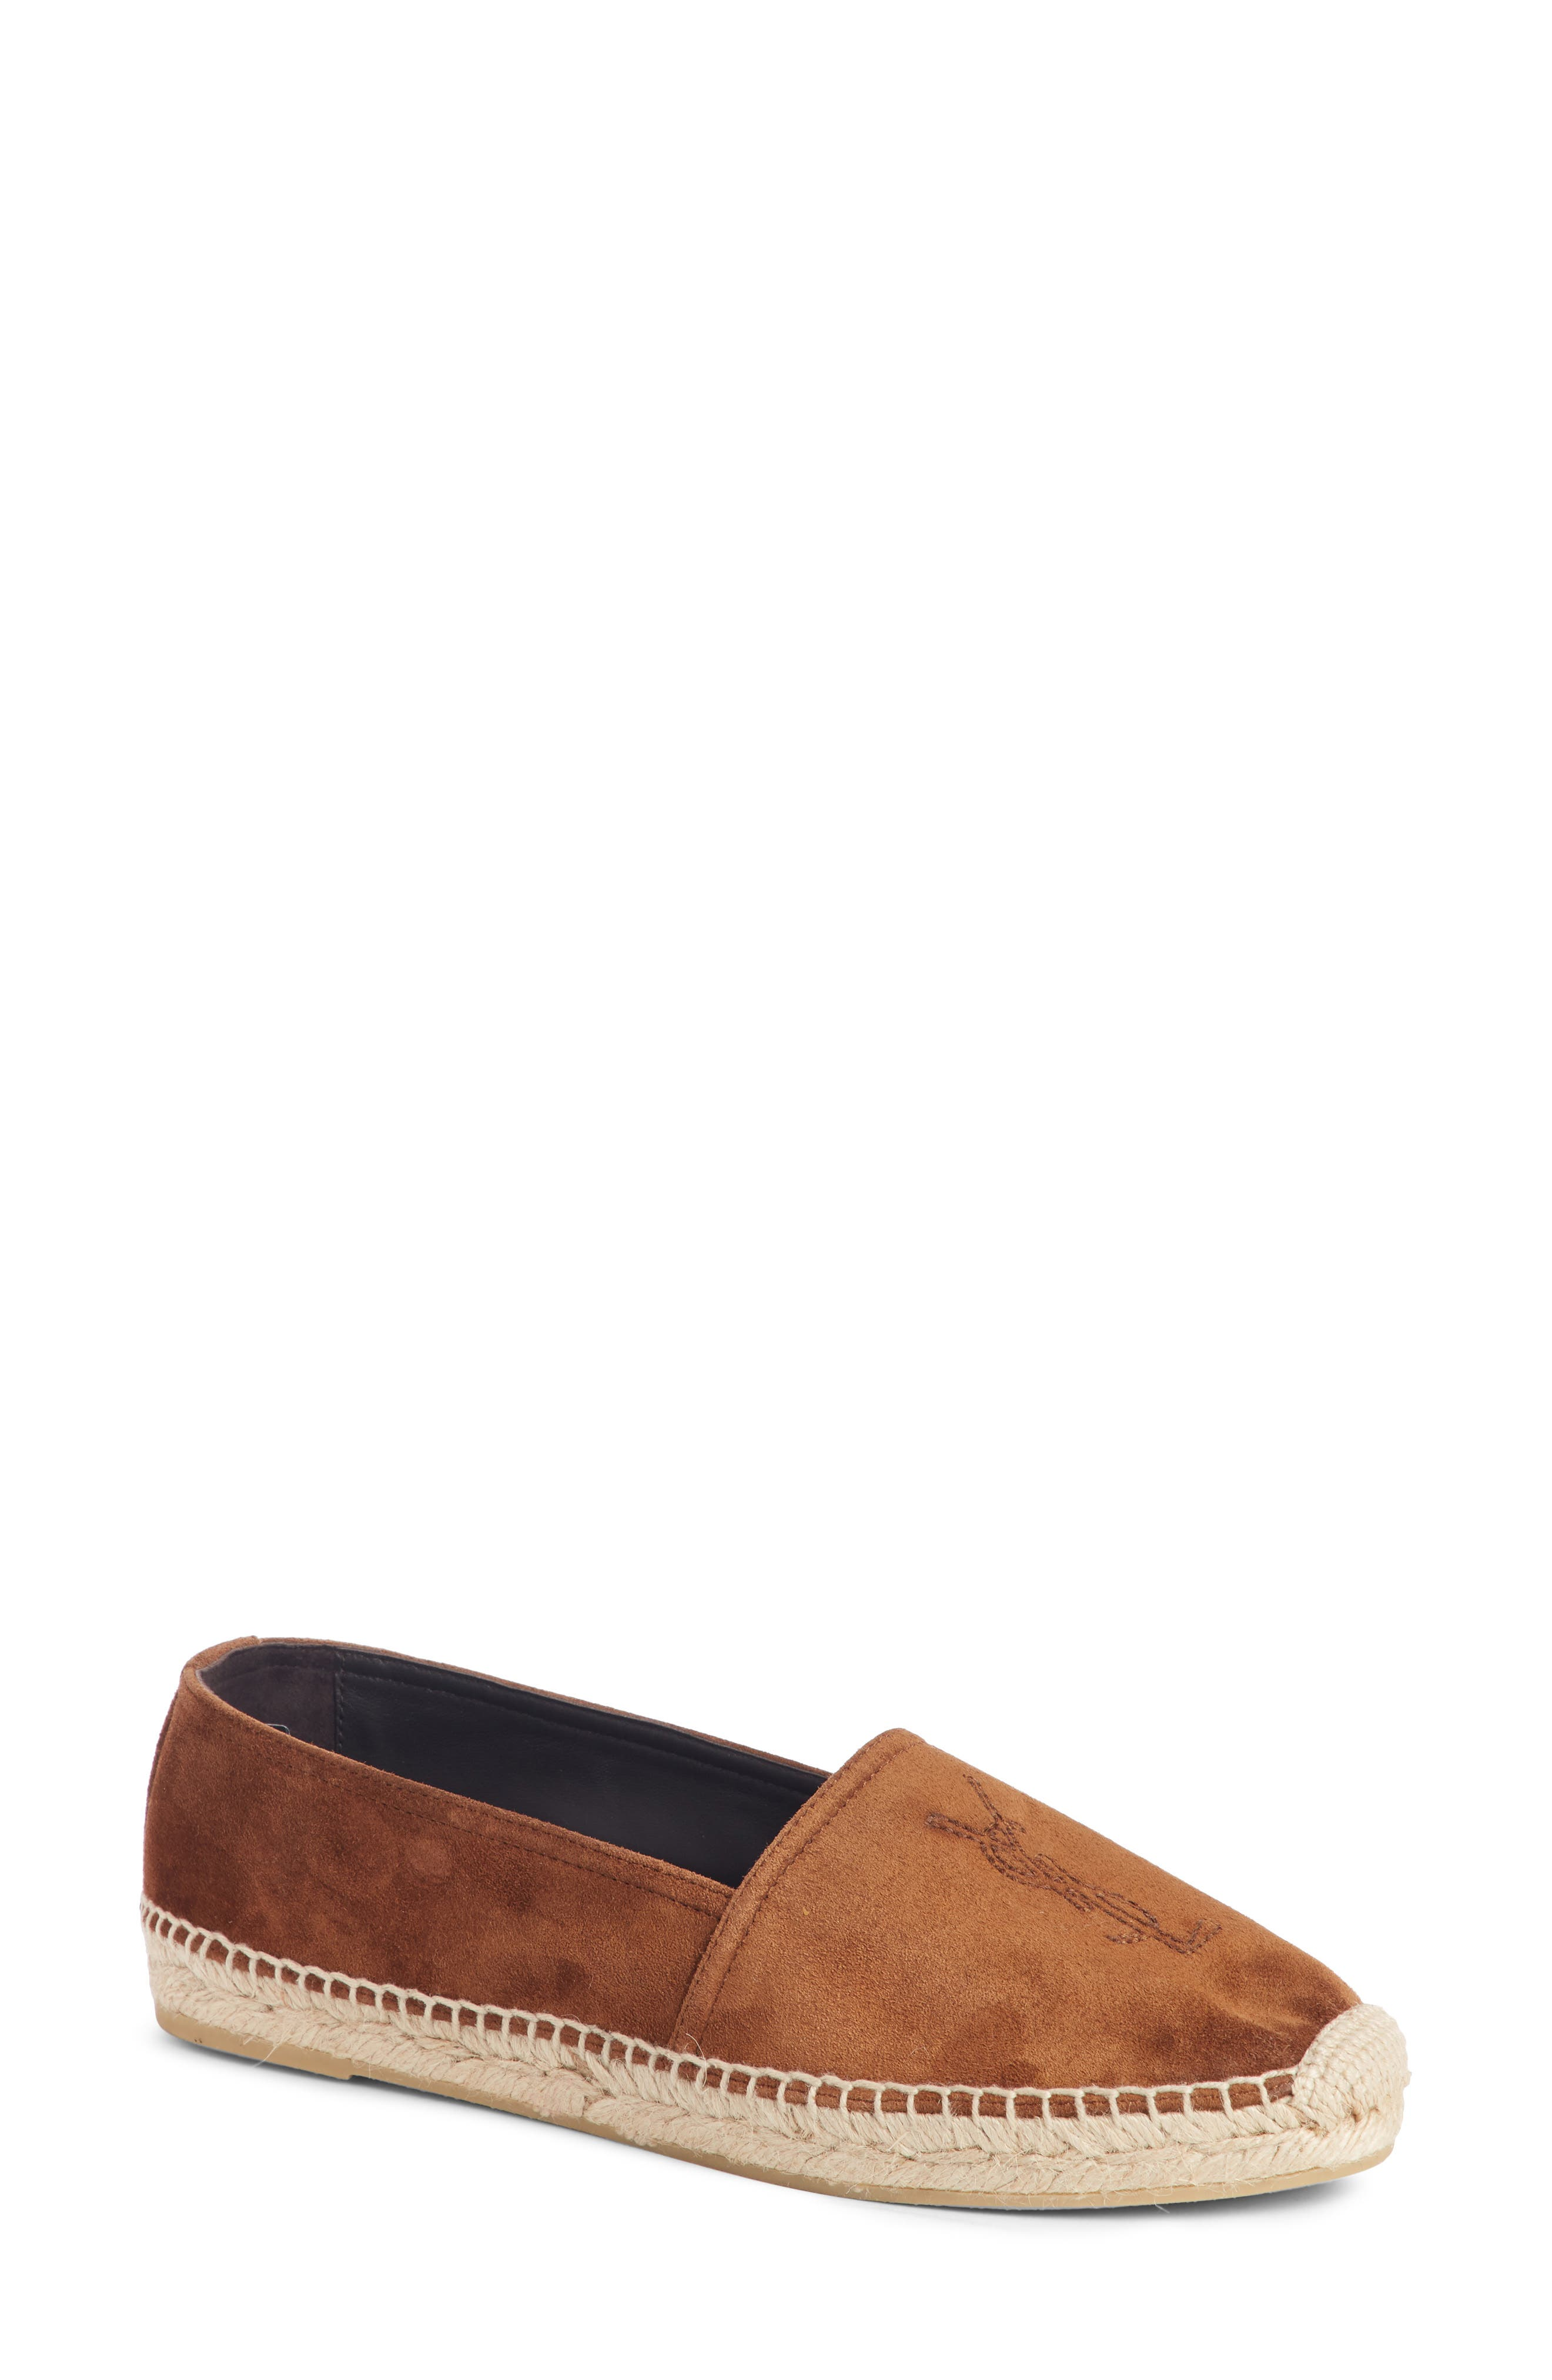 Saint Laurent Ysl Logo Espadrille, Brown